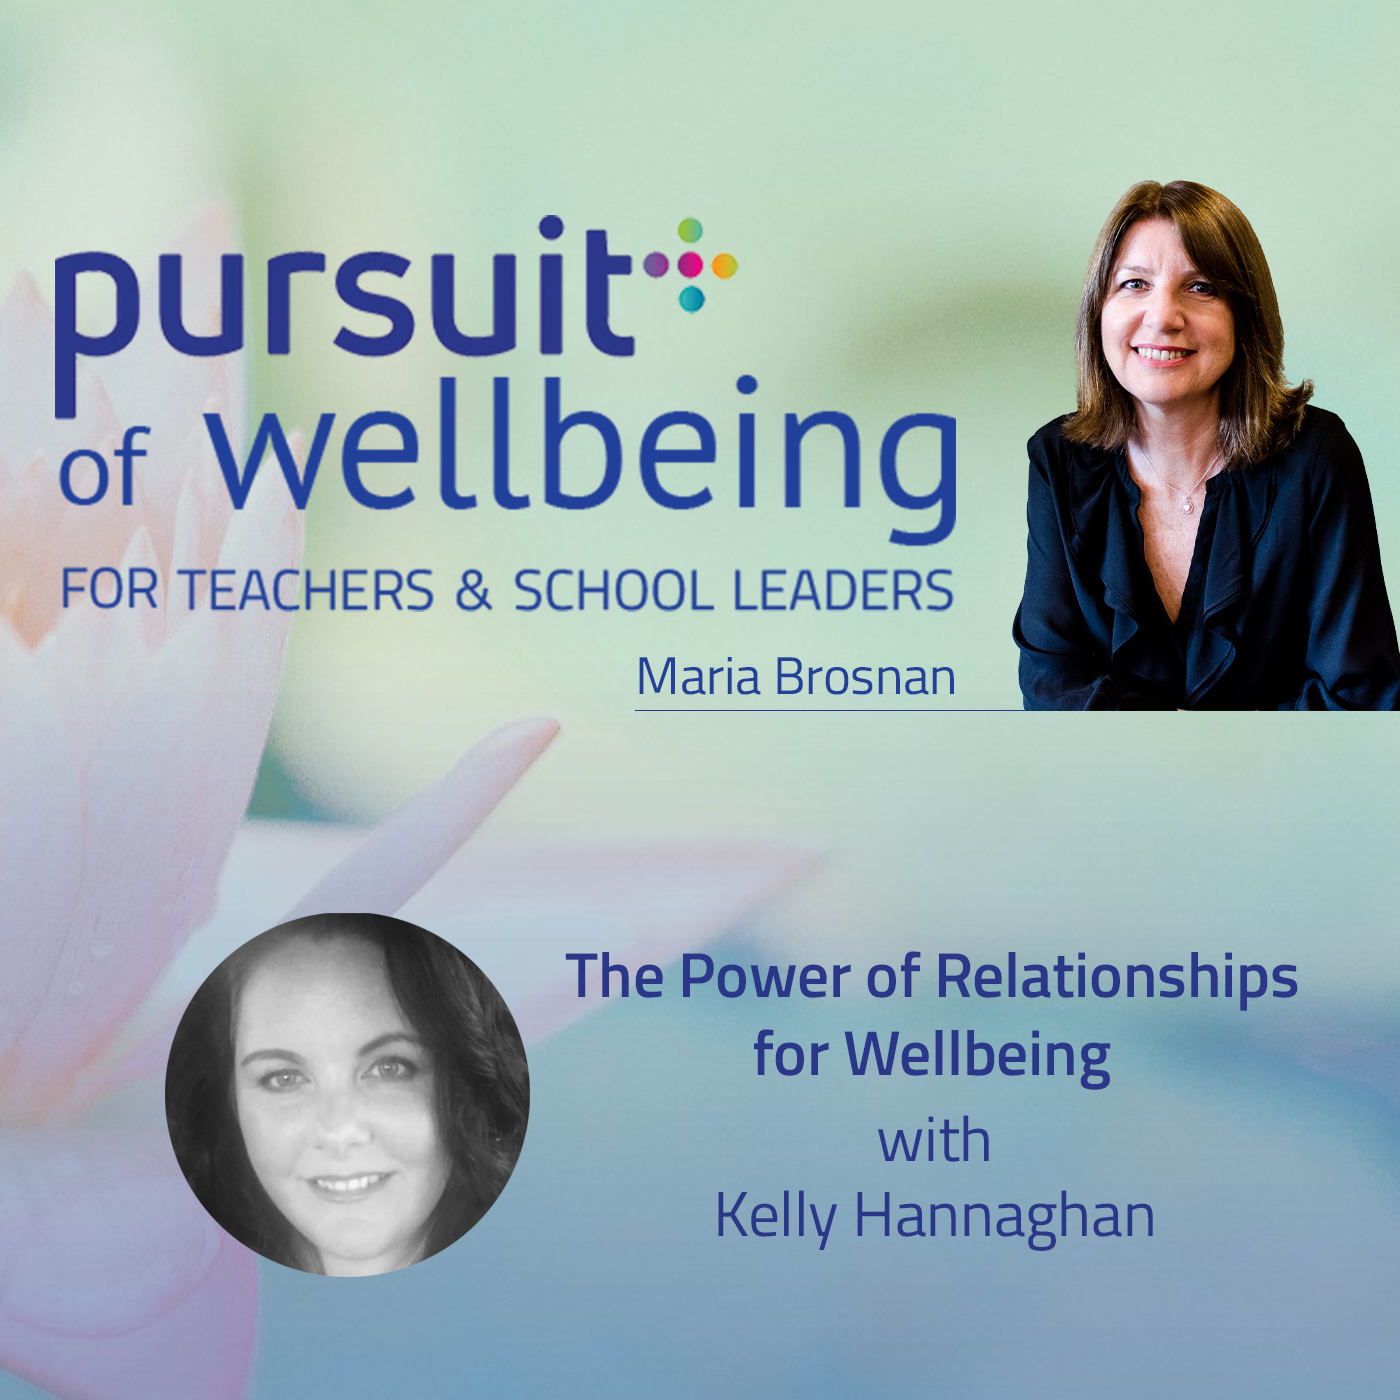 The Power of Relationships for Wellbeing with Kelly Hannaghan